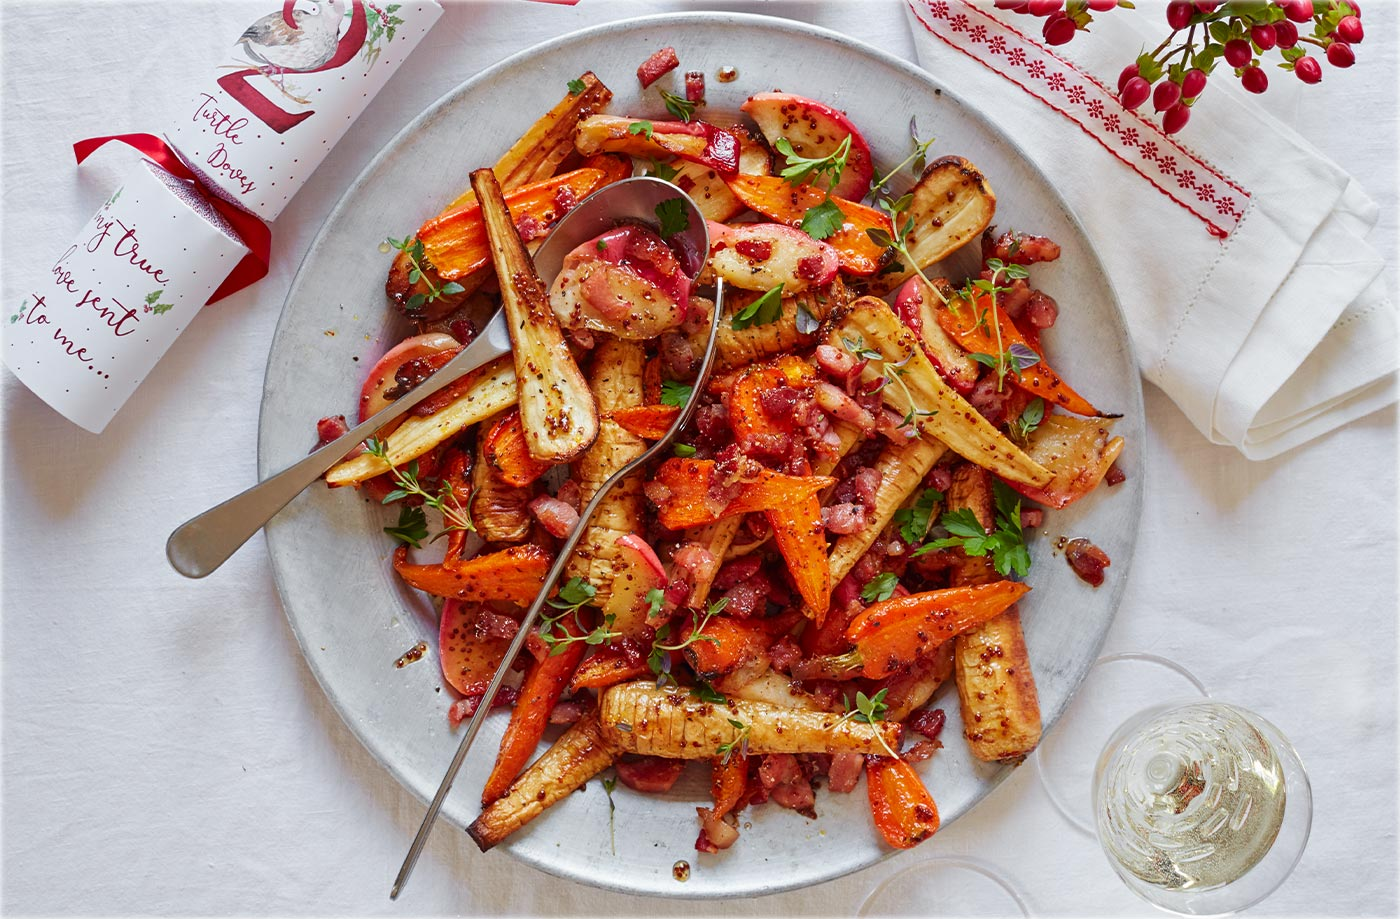 Roasted carrots and parsnips with bacon and apples